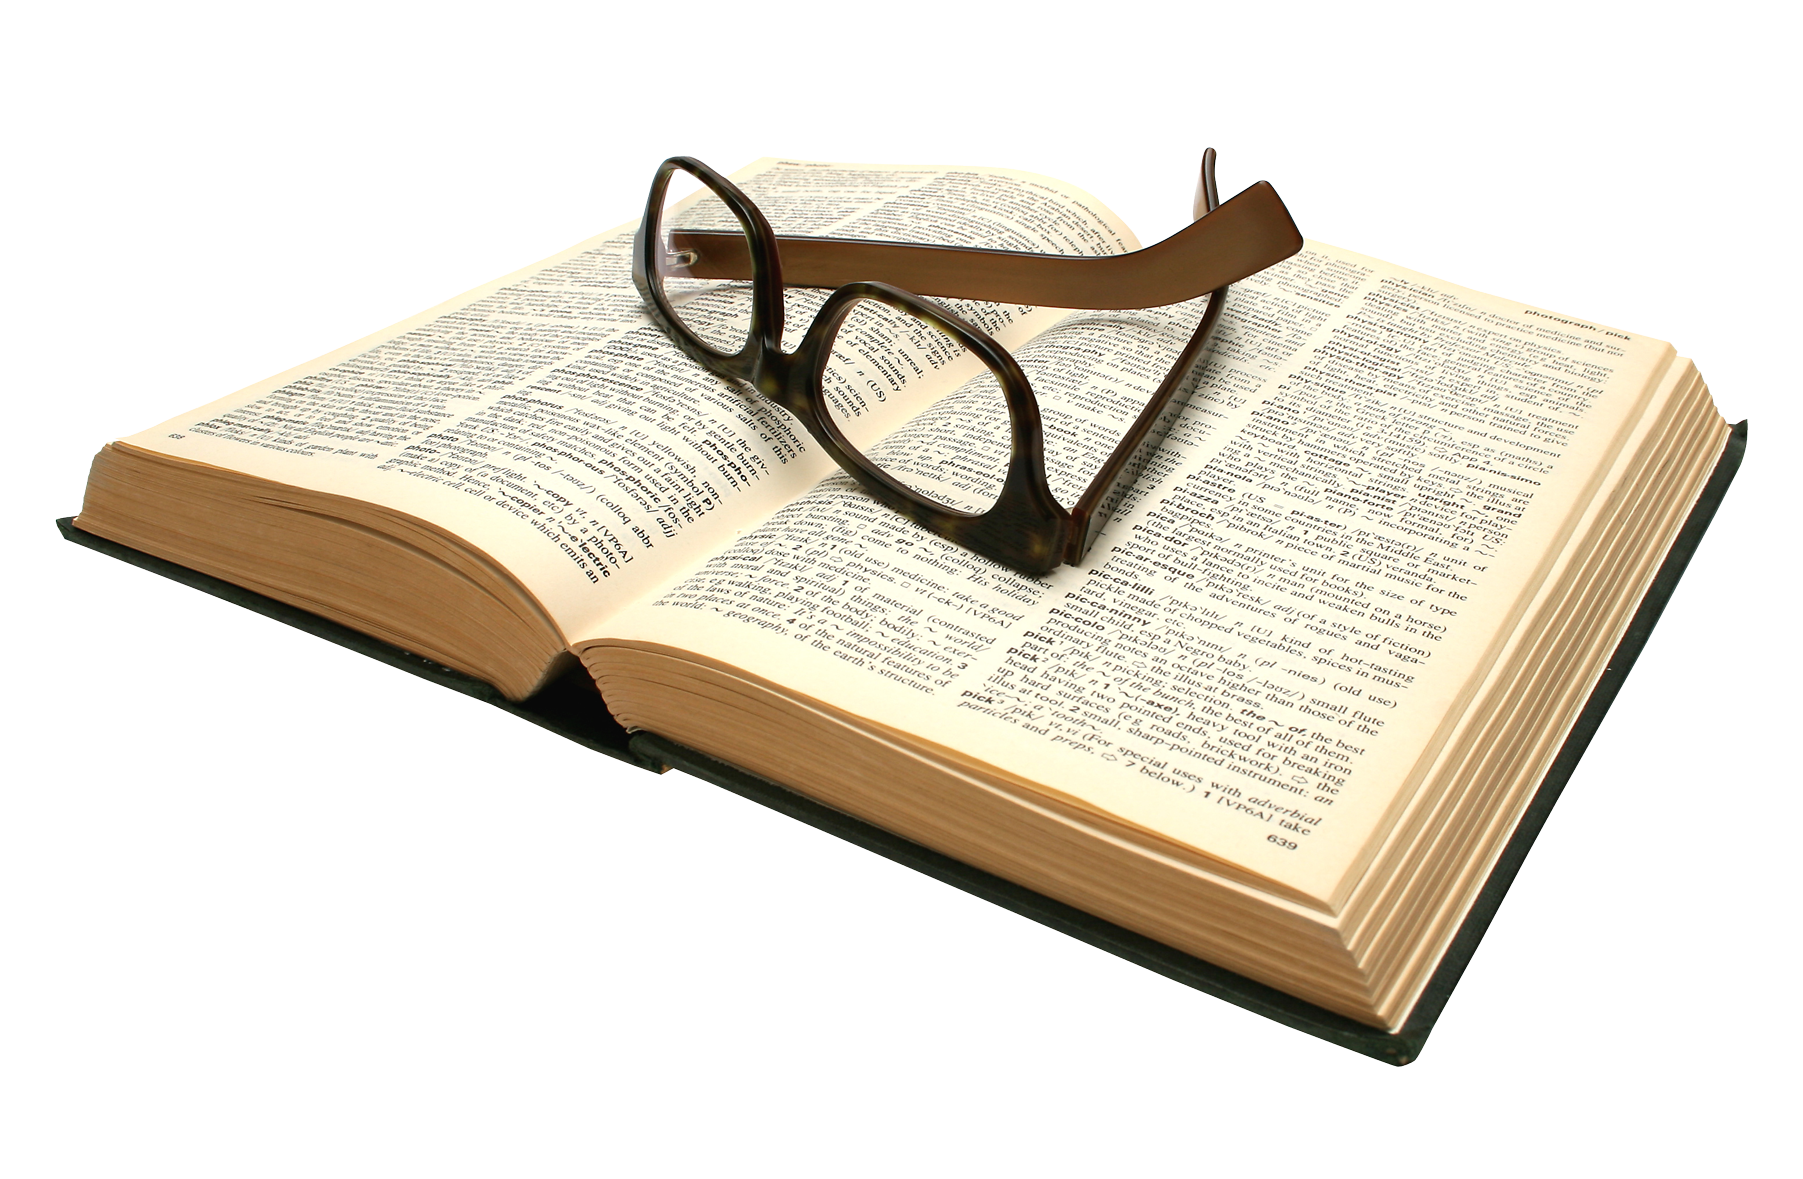 Book png transparent. Free images only and